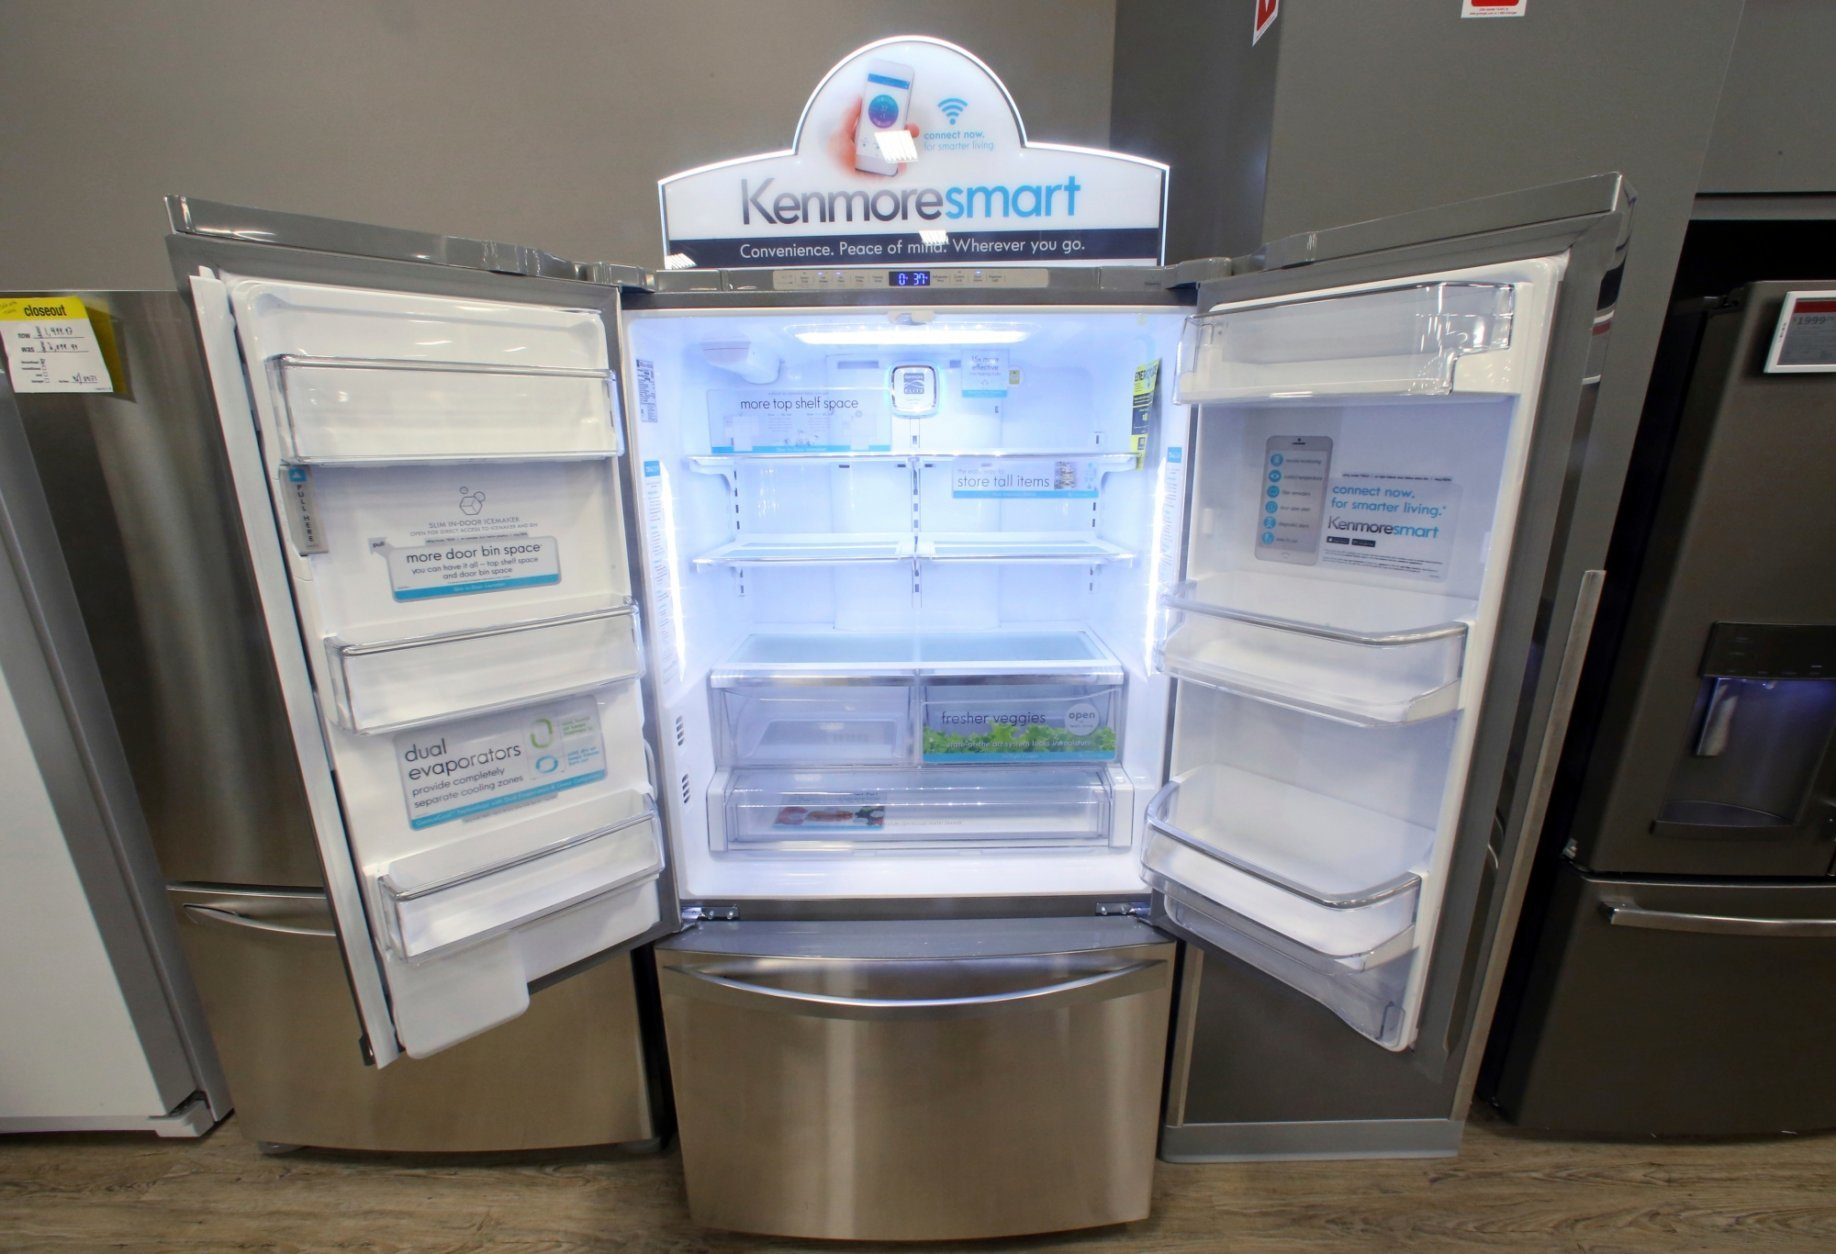 FILE - In this July 20, 2017, file photo, the Kenmore Elite Smart French Door Refrigerator appears on display at a Sears store in West Jordan, Utah. Private equity firm ESL Investments is offering to buy struggling Sear's Kenmore brand and home improvement unit. (AP Photo/Rick Bowmer, File)